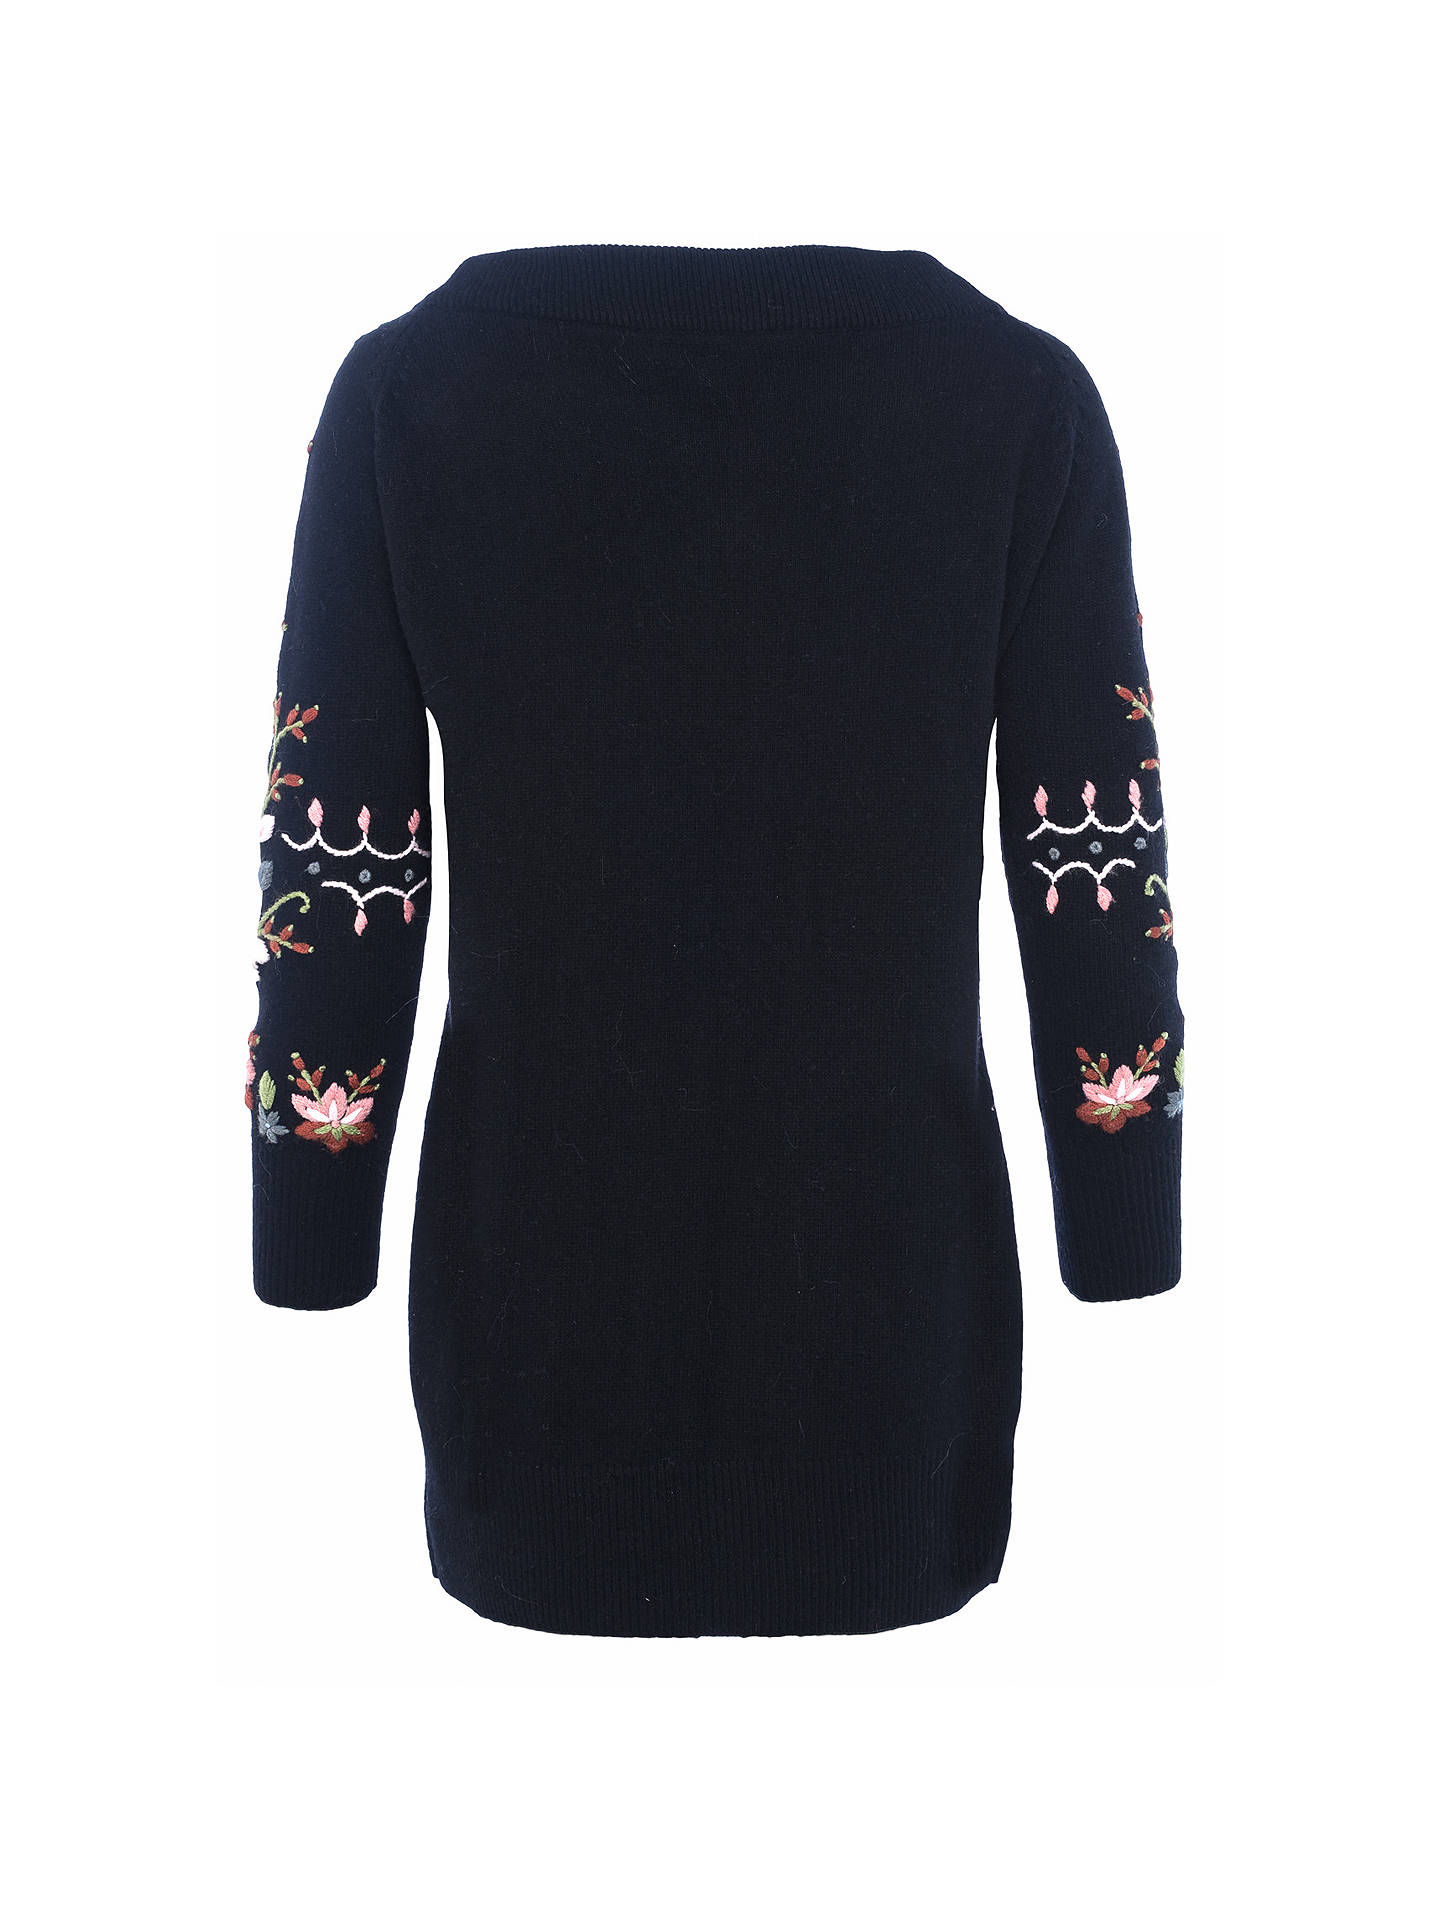 7146950cf8b Buy French Connection Bijou Embroidery Jumper, Black/Multi, XS Online at  johnlewis.